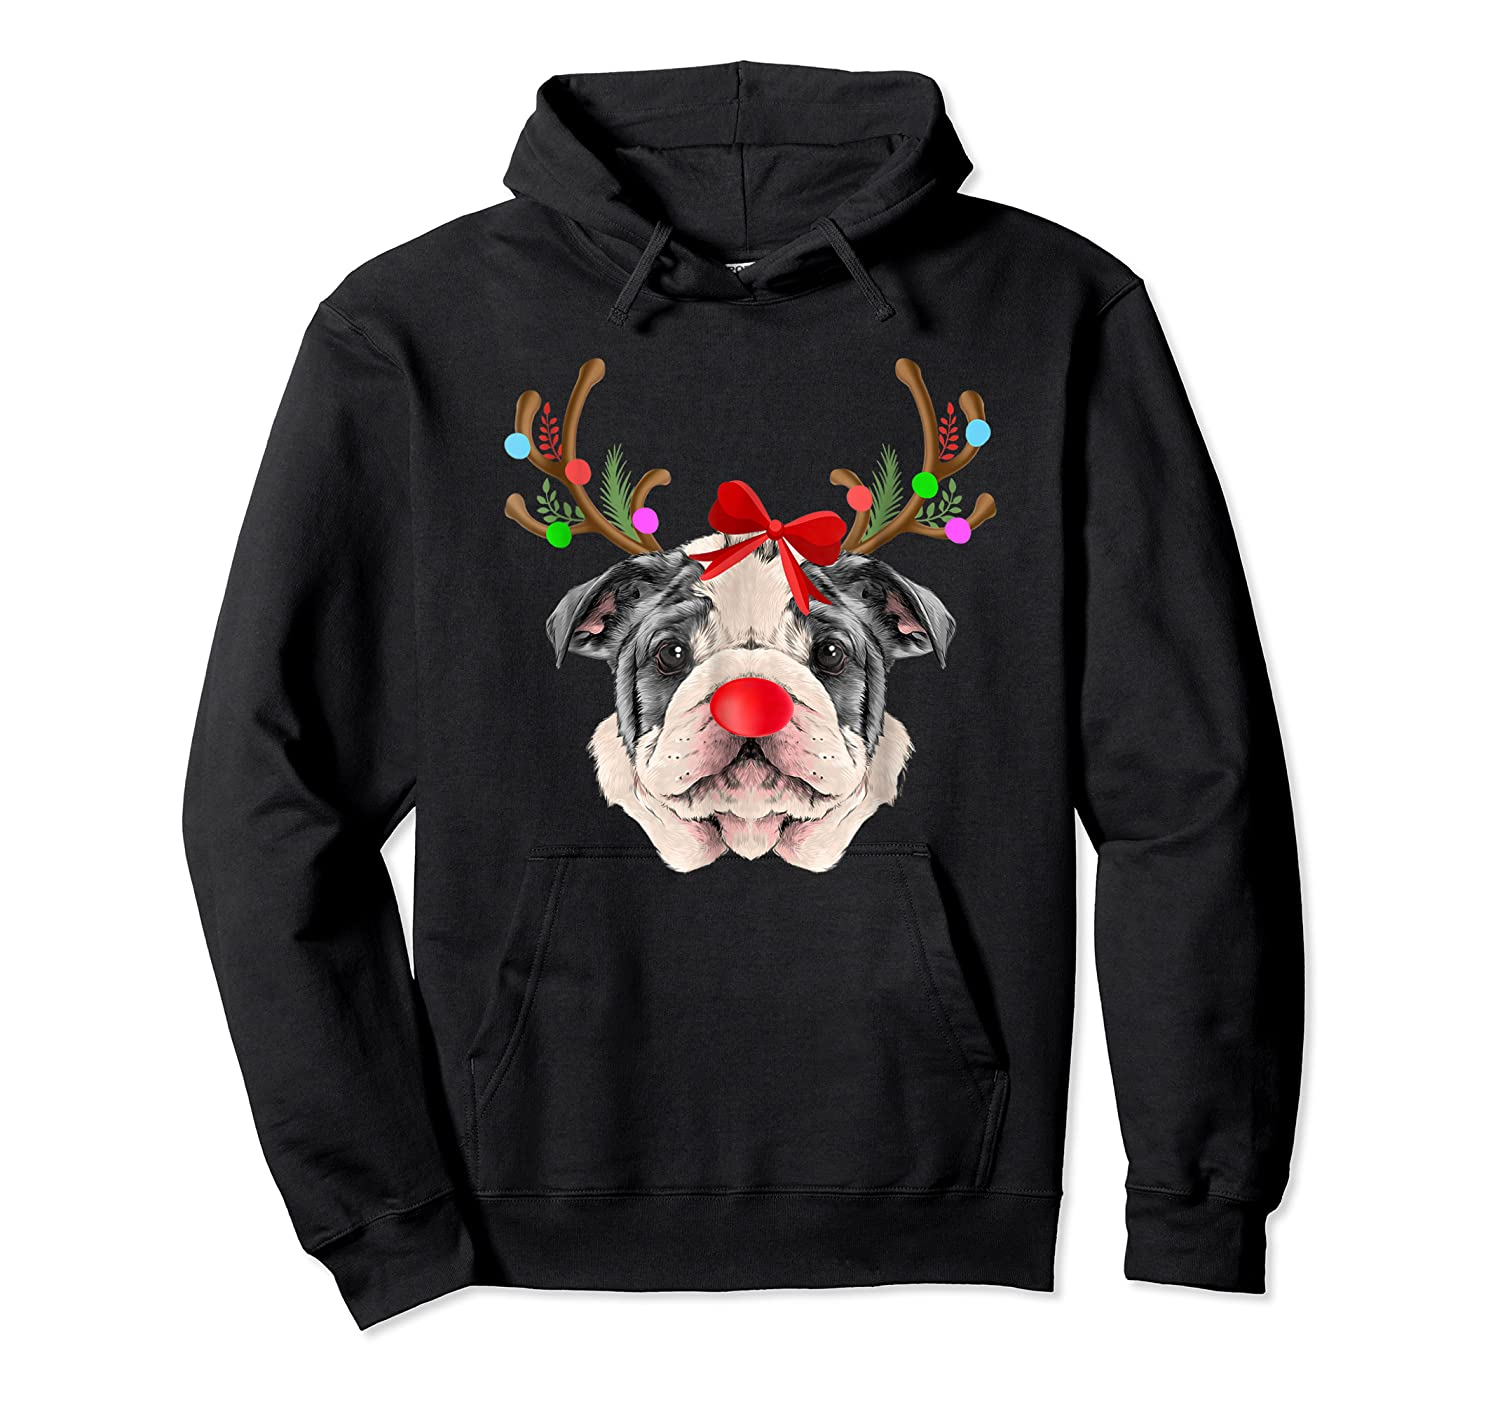 Funny Bulldogs With Antlers Light Christmas Shirts Unisex Pullover Hoodie